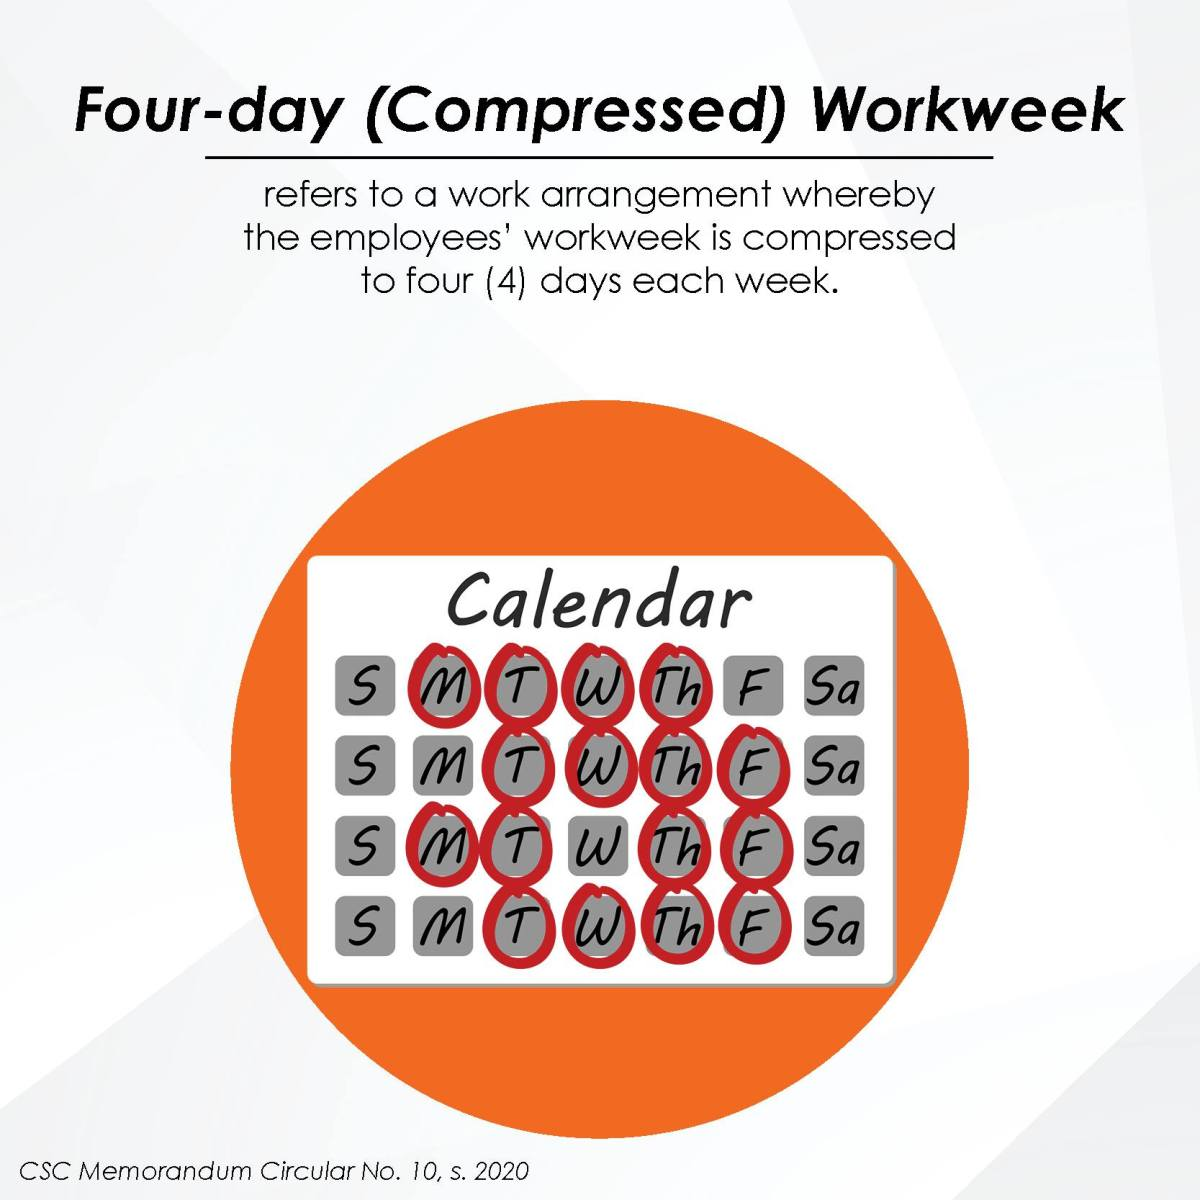 Four-day (Compressed) Workweek